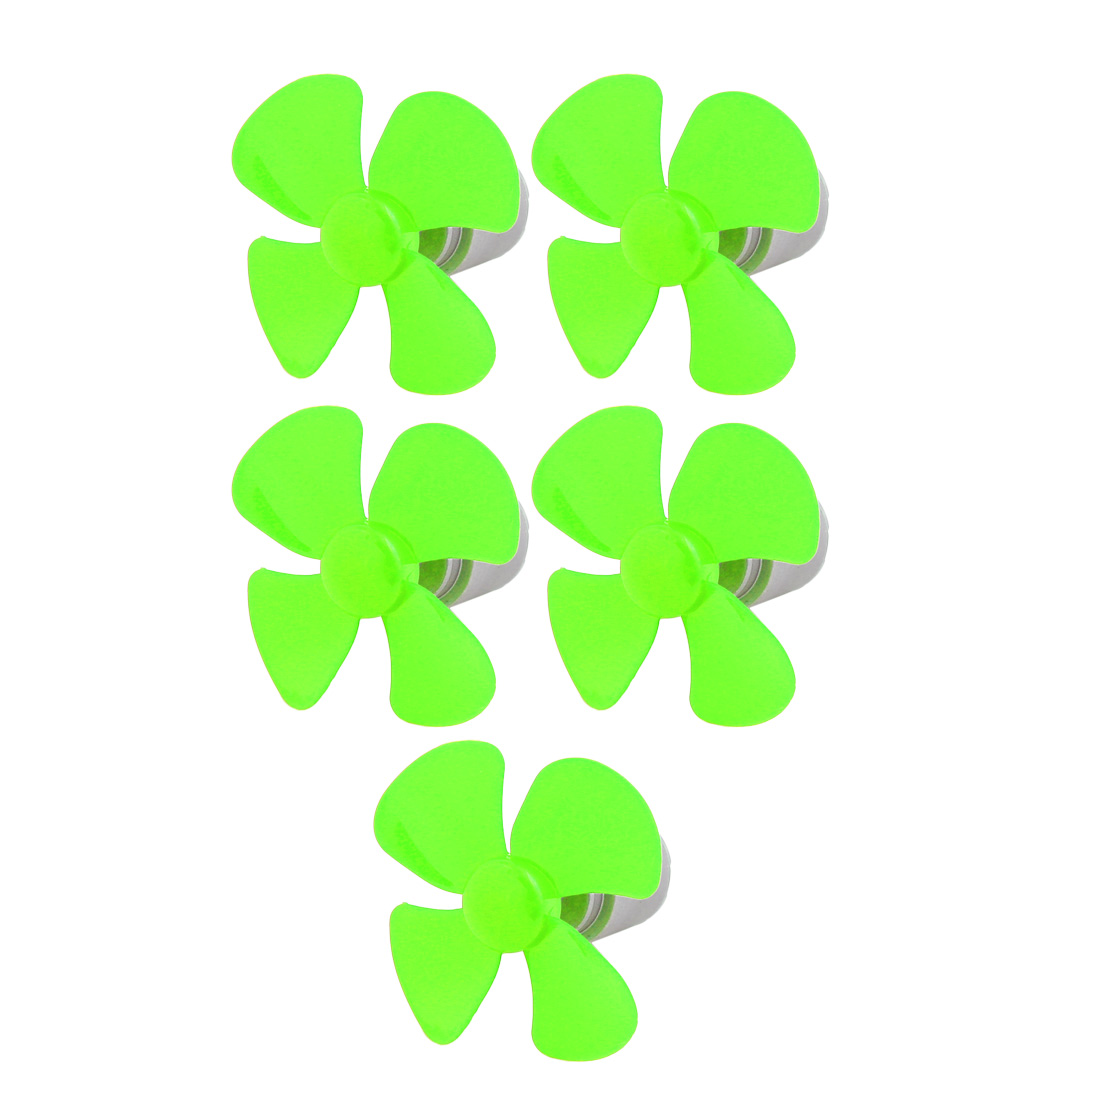 5pcs DC 3V 0.13A 19500RPM Green Strong Force Motor 4 Vanes 56mm Dia Propeller for RC Aircraft